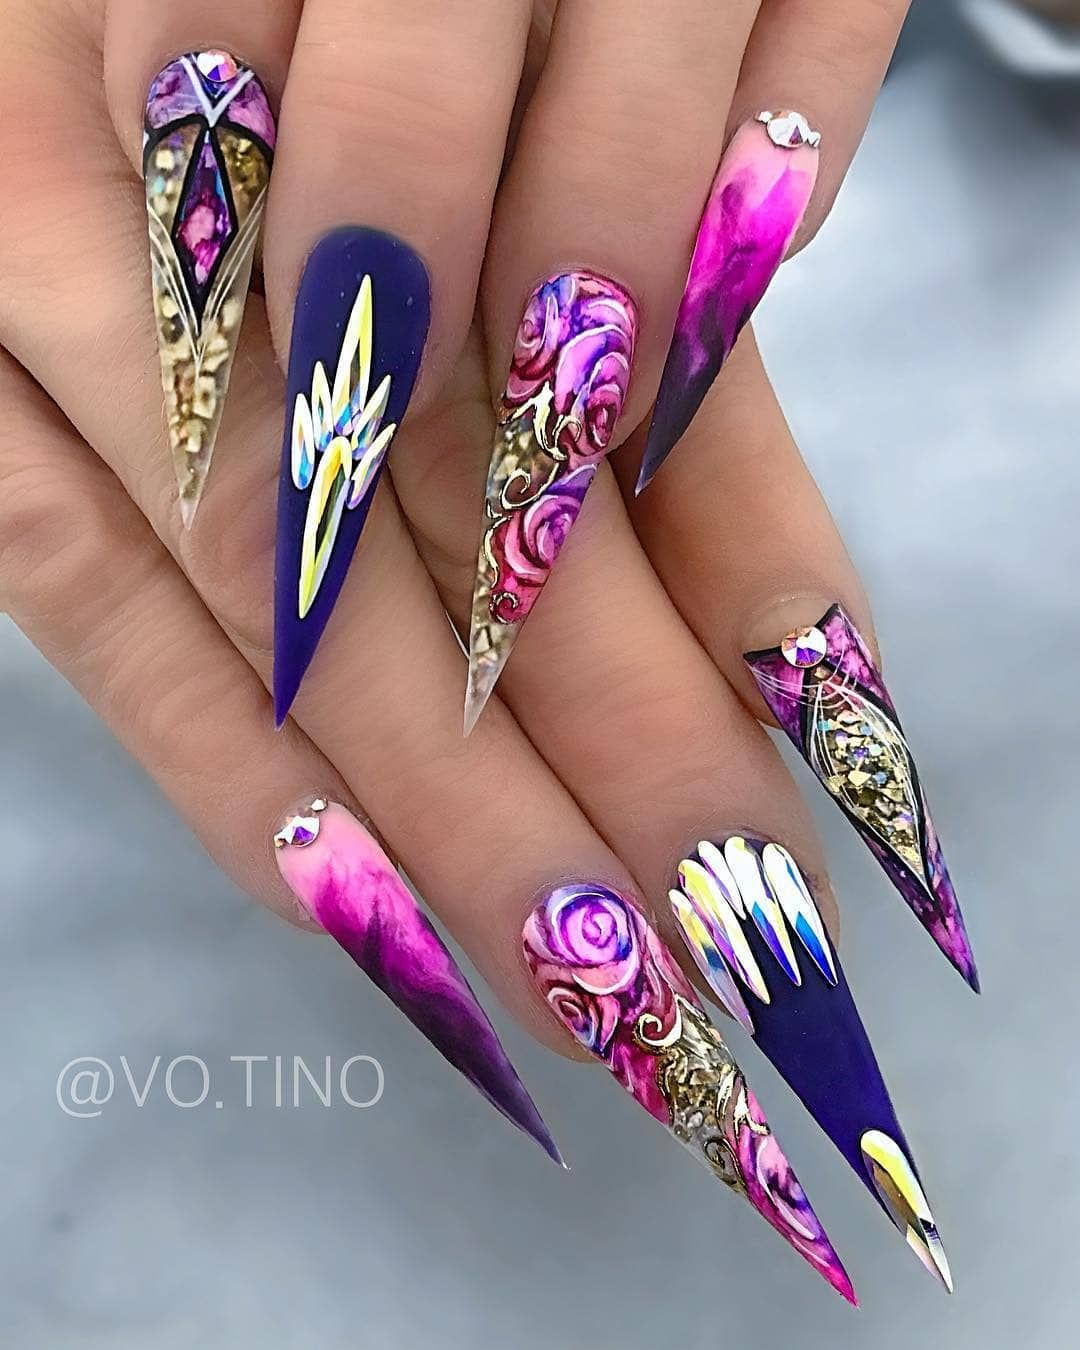 Nails Fascination On Instagram Nailsfascination Beautiful Art